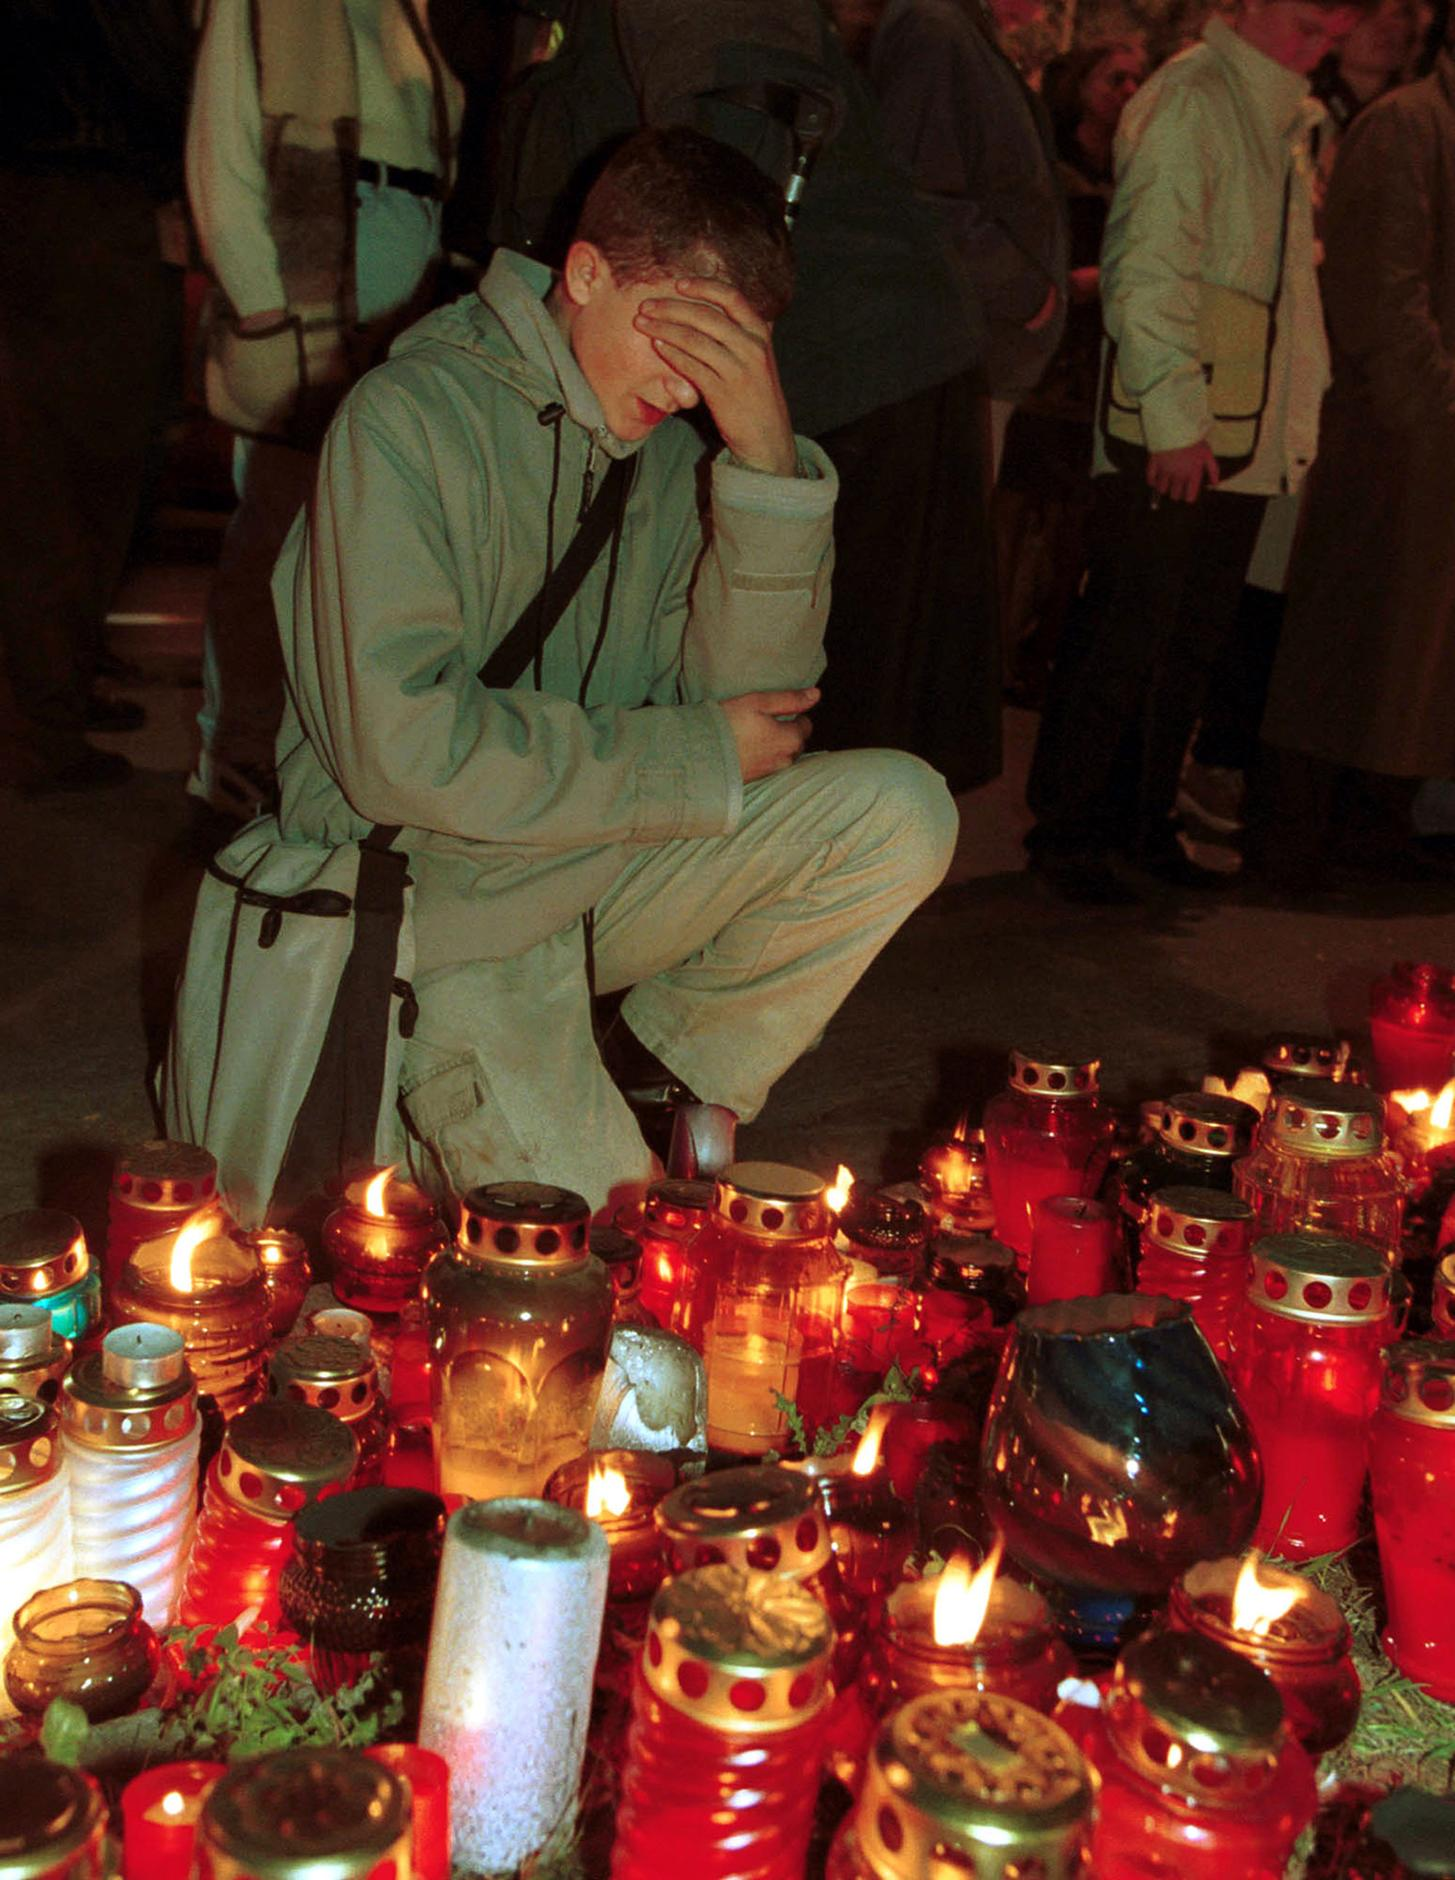 <p>An unidentified Warsaw resident prays in front of candles placed outside th U.S. embassy in Warsaw Wednesday Sept.12,2001. People kept coming to light candles and place flowers in front of the embassy in memory of the victims of the terrorist attacks in New York and Washington. (AP Photo/Alik Keplicz) </p>